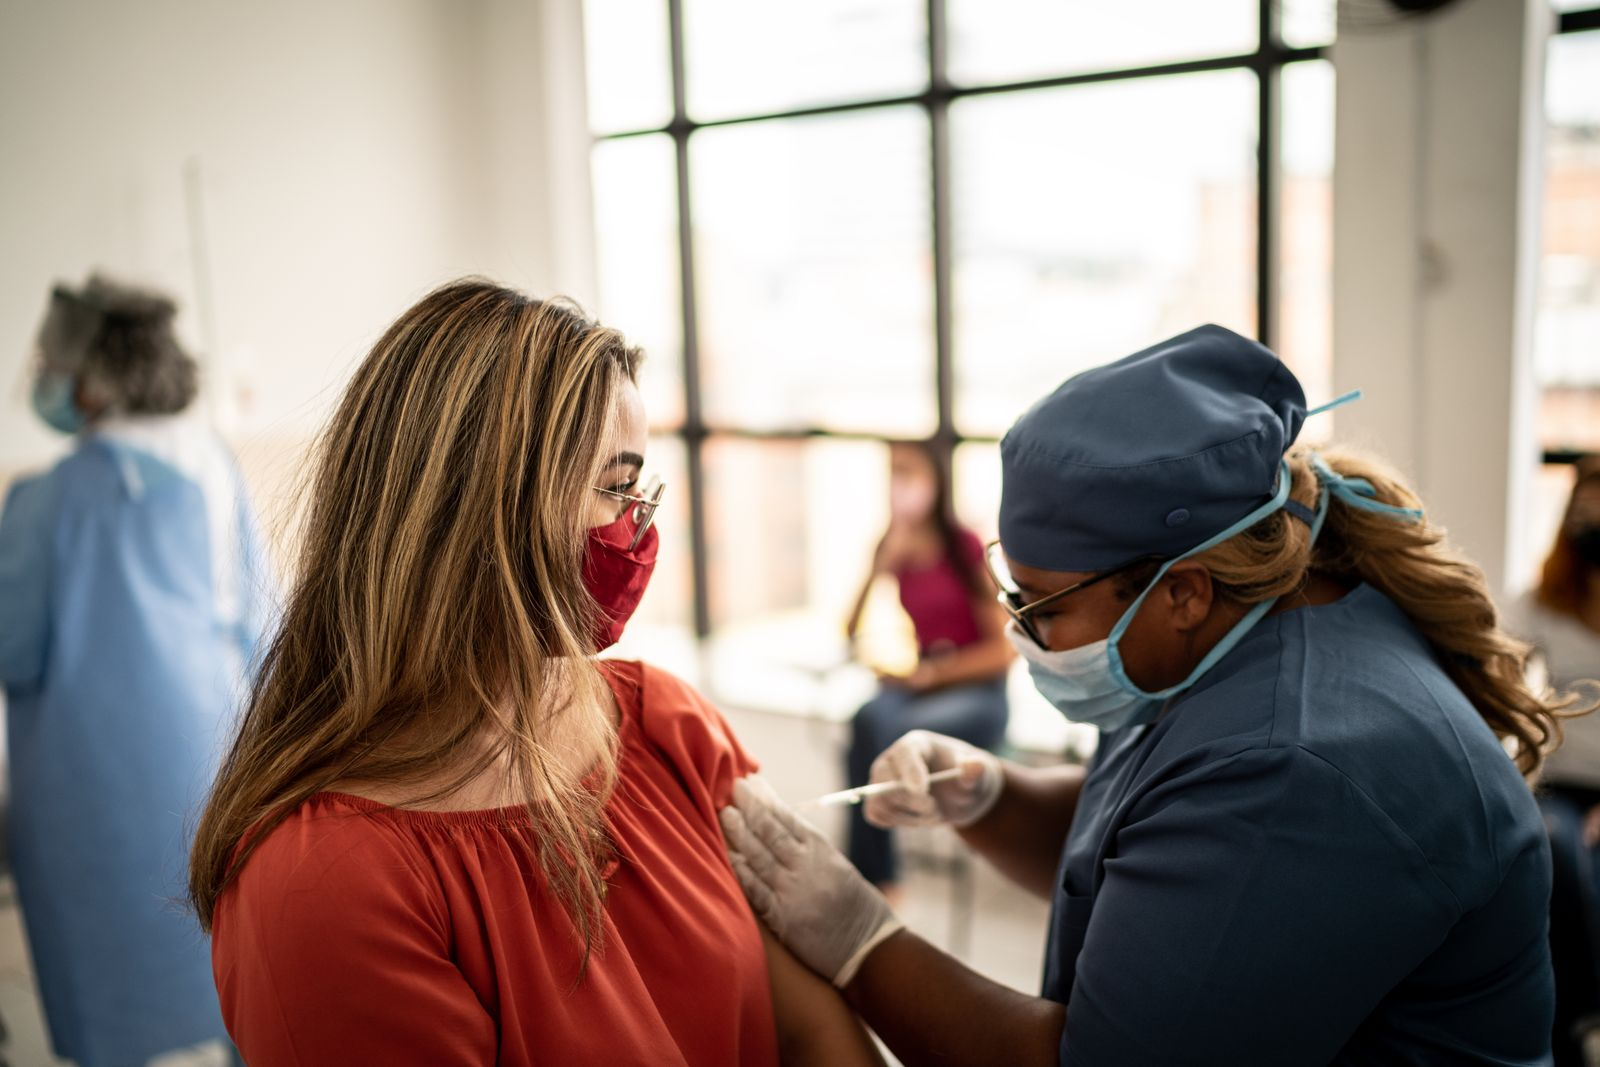 Teenager girl being vaccinated - wearing face mask